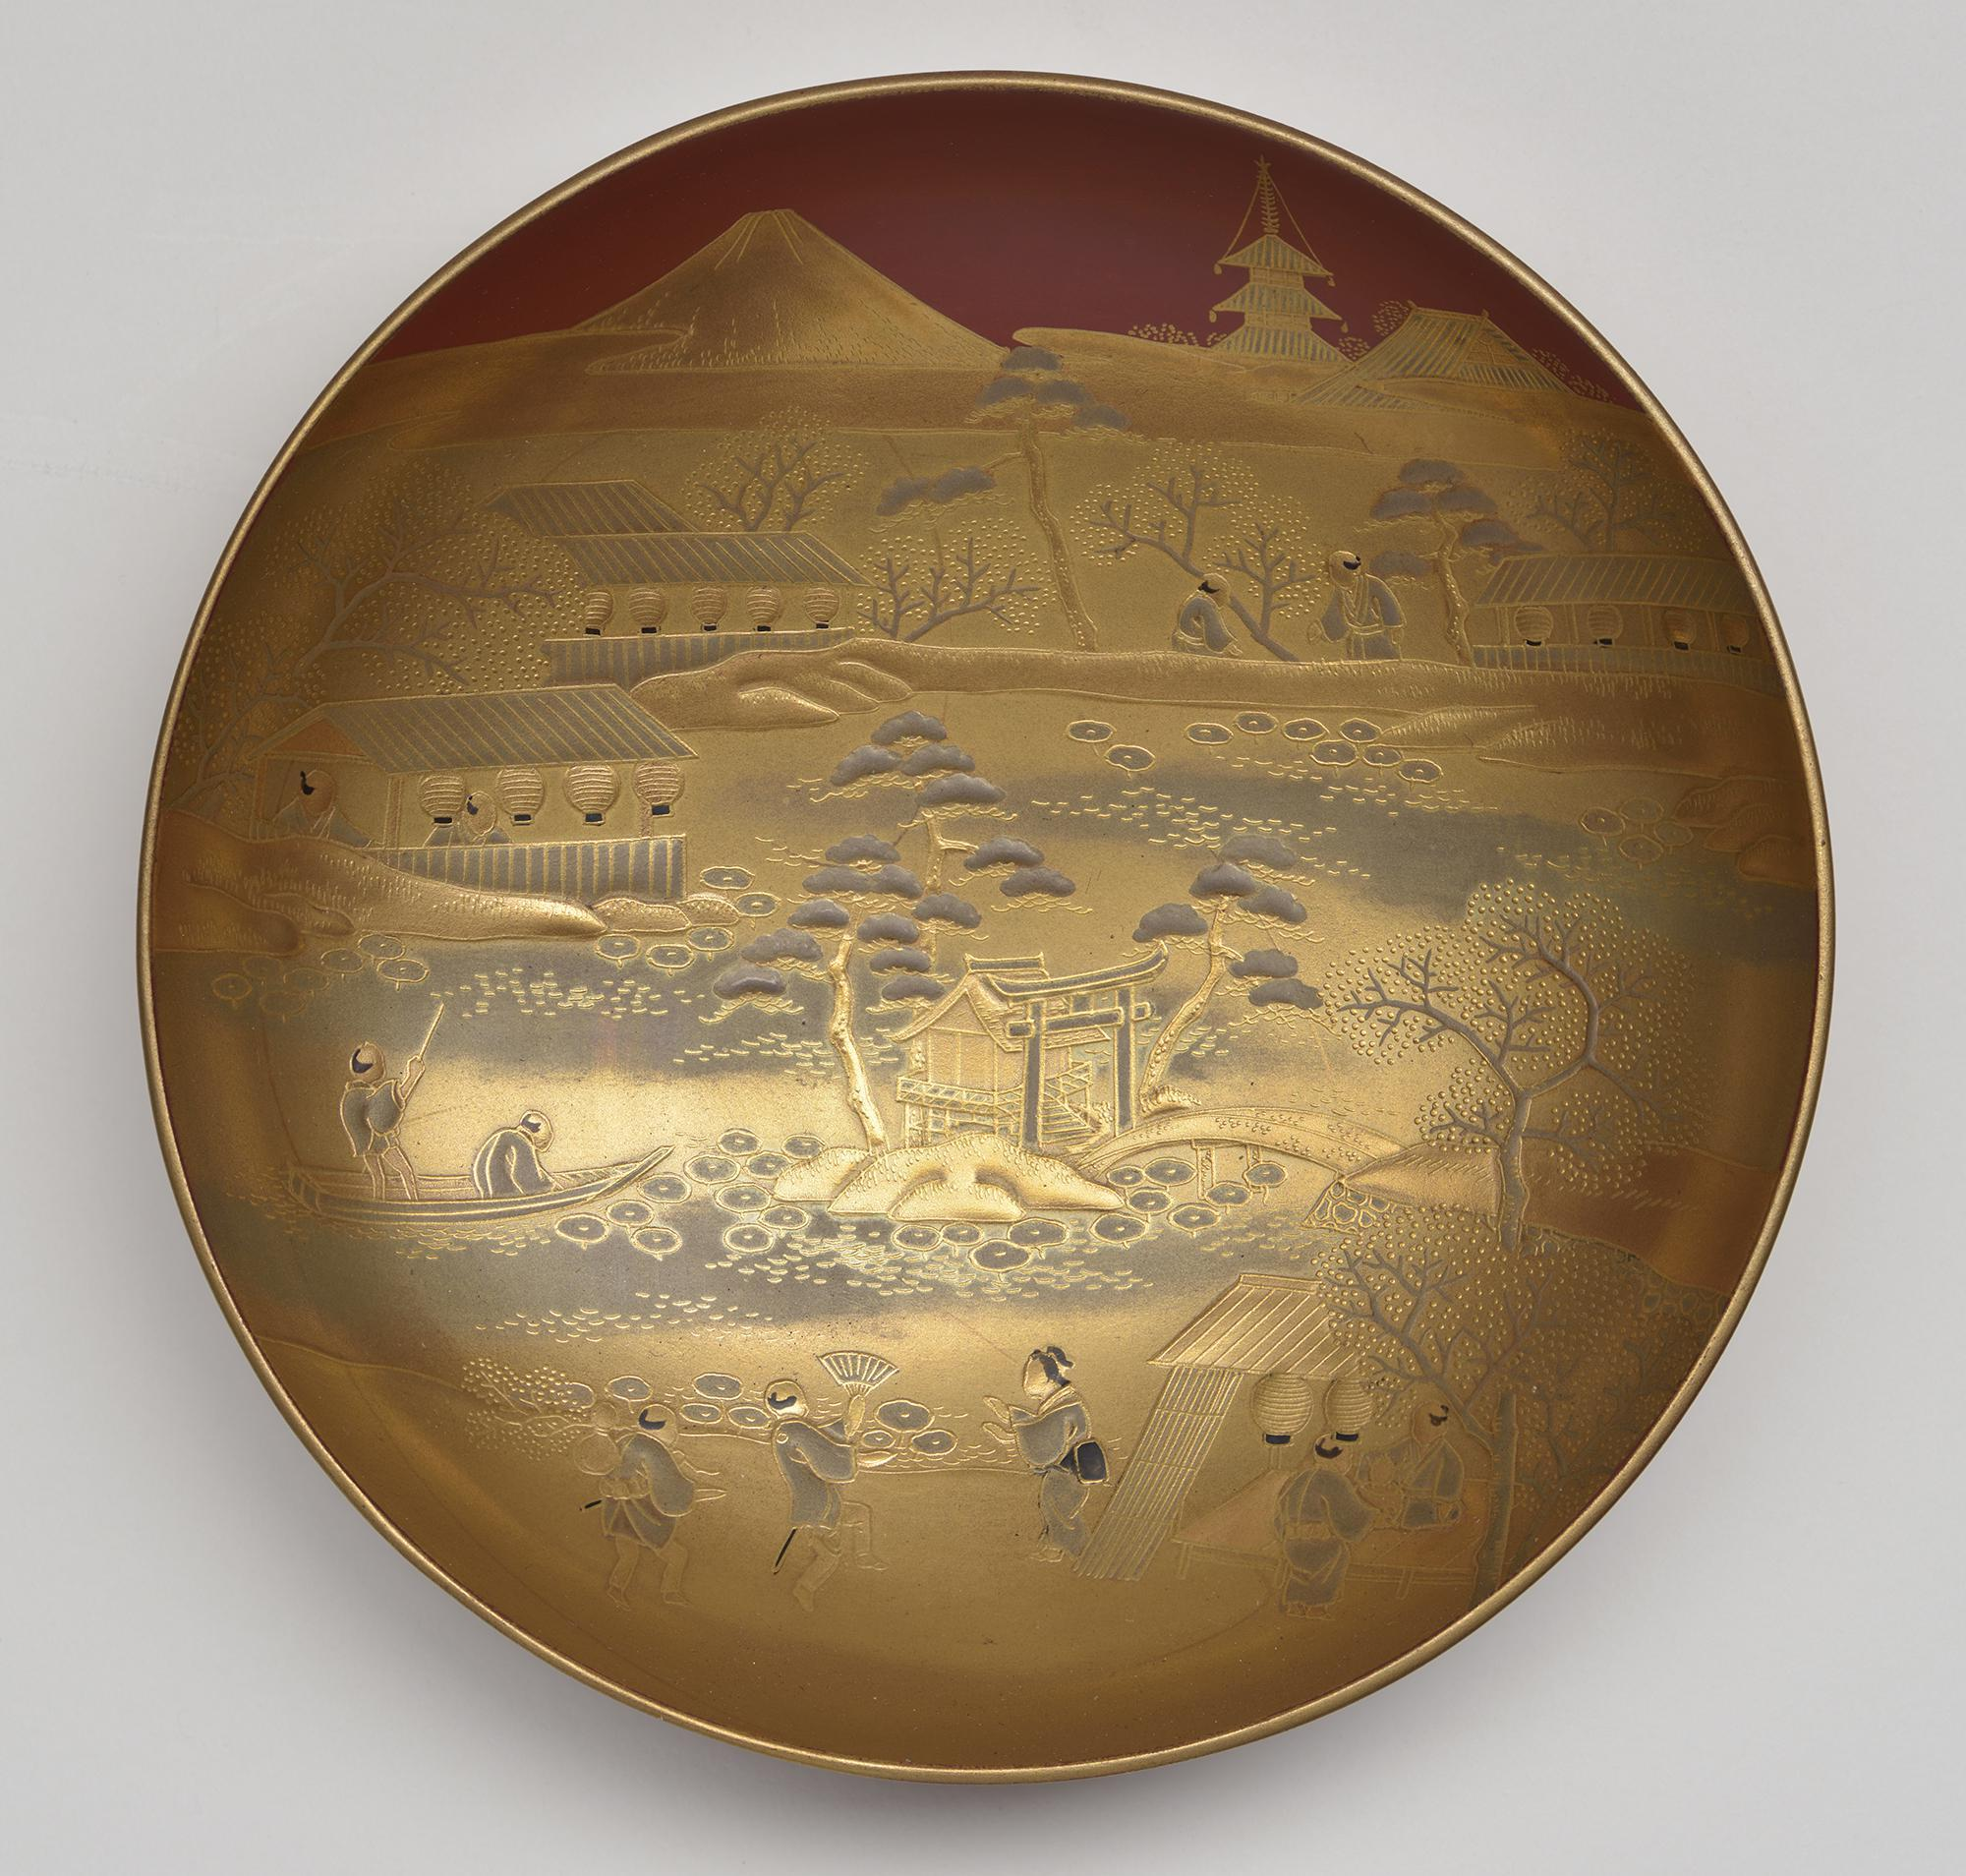 Japanese, Saké Cup: Shinobazu Pond and Mt. Fuji, 19th century. Lacquered wood (hiramakié)